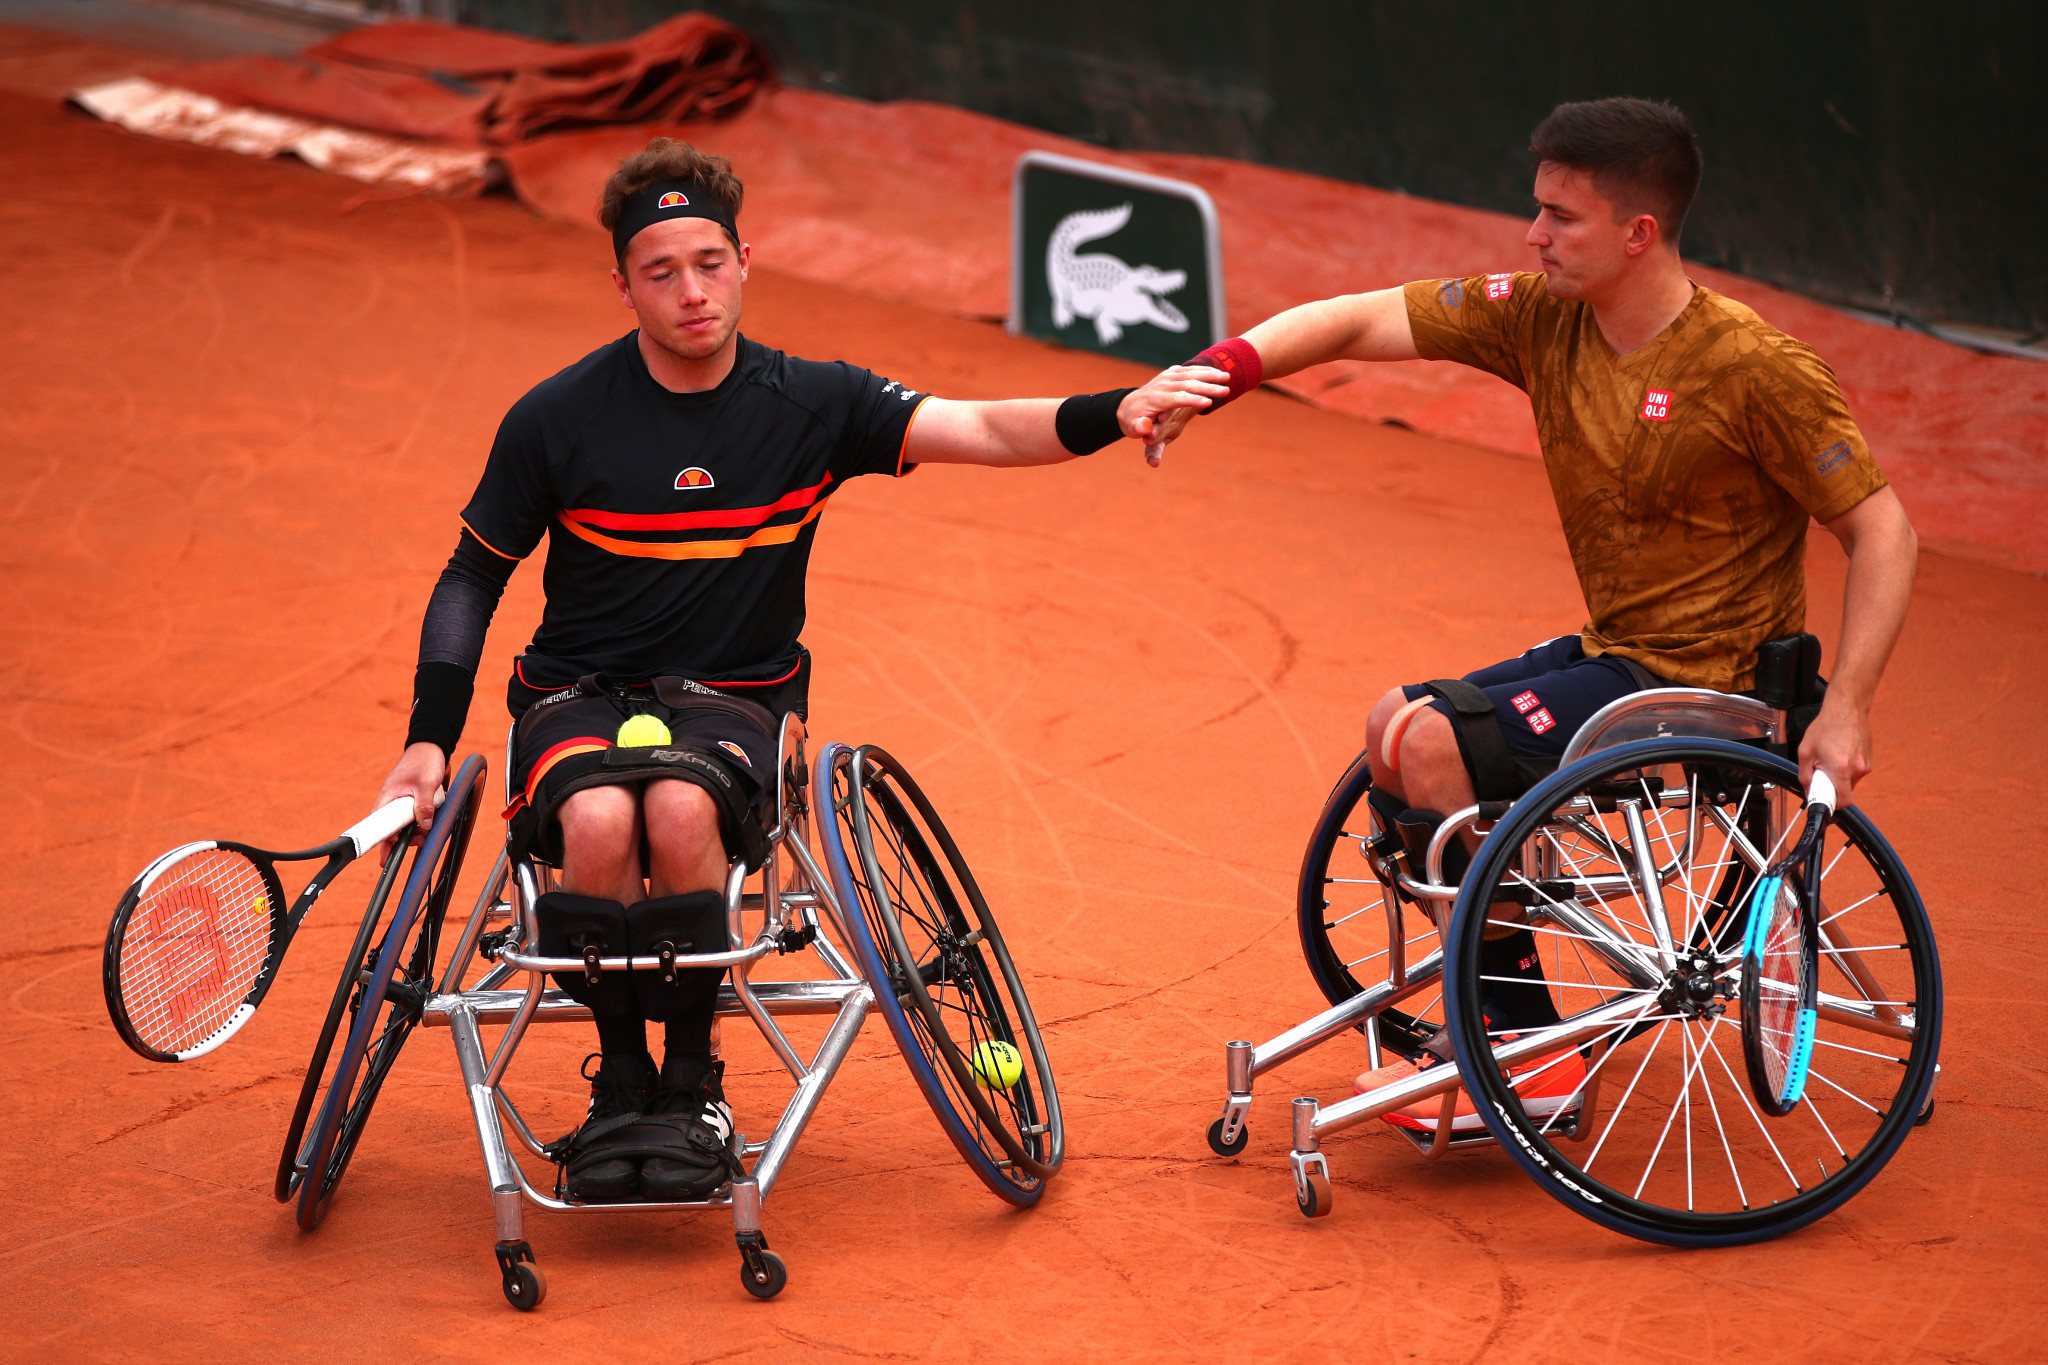 British pair Gordon Reid and Alfie Hewett lost the men's French Open wheelchair doubles final to Gustavo Fernandez of Argentina and Japan's Shingo Kunieda ©Getty Images